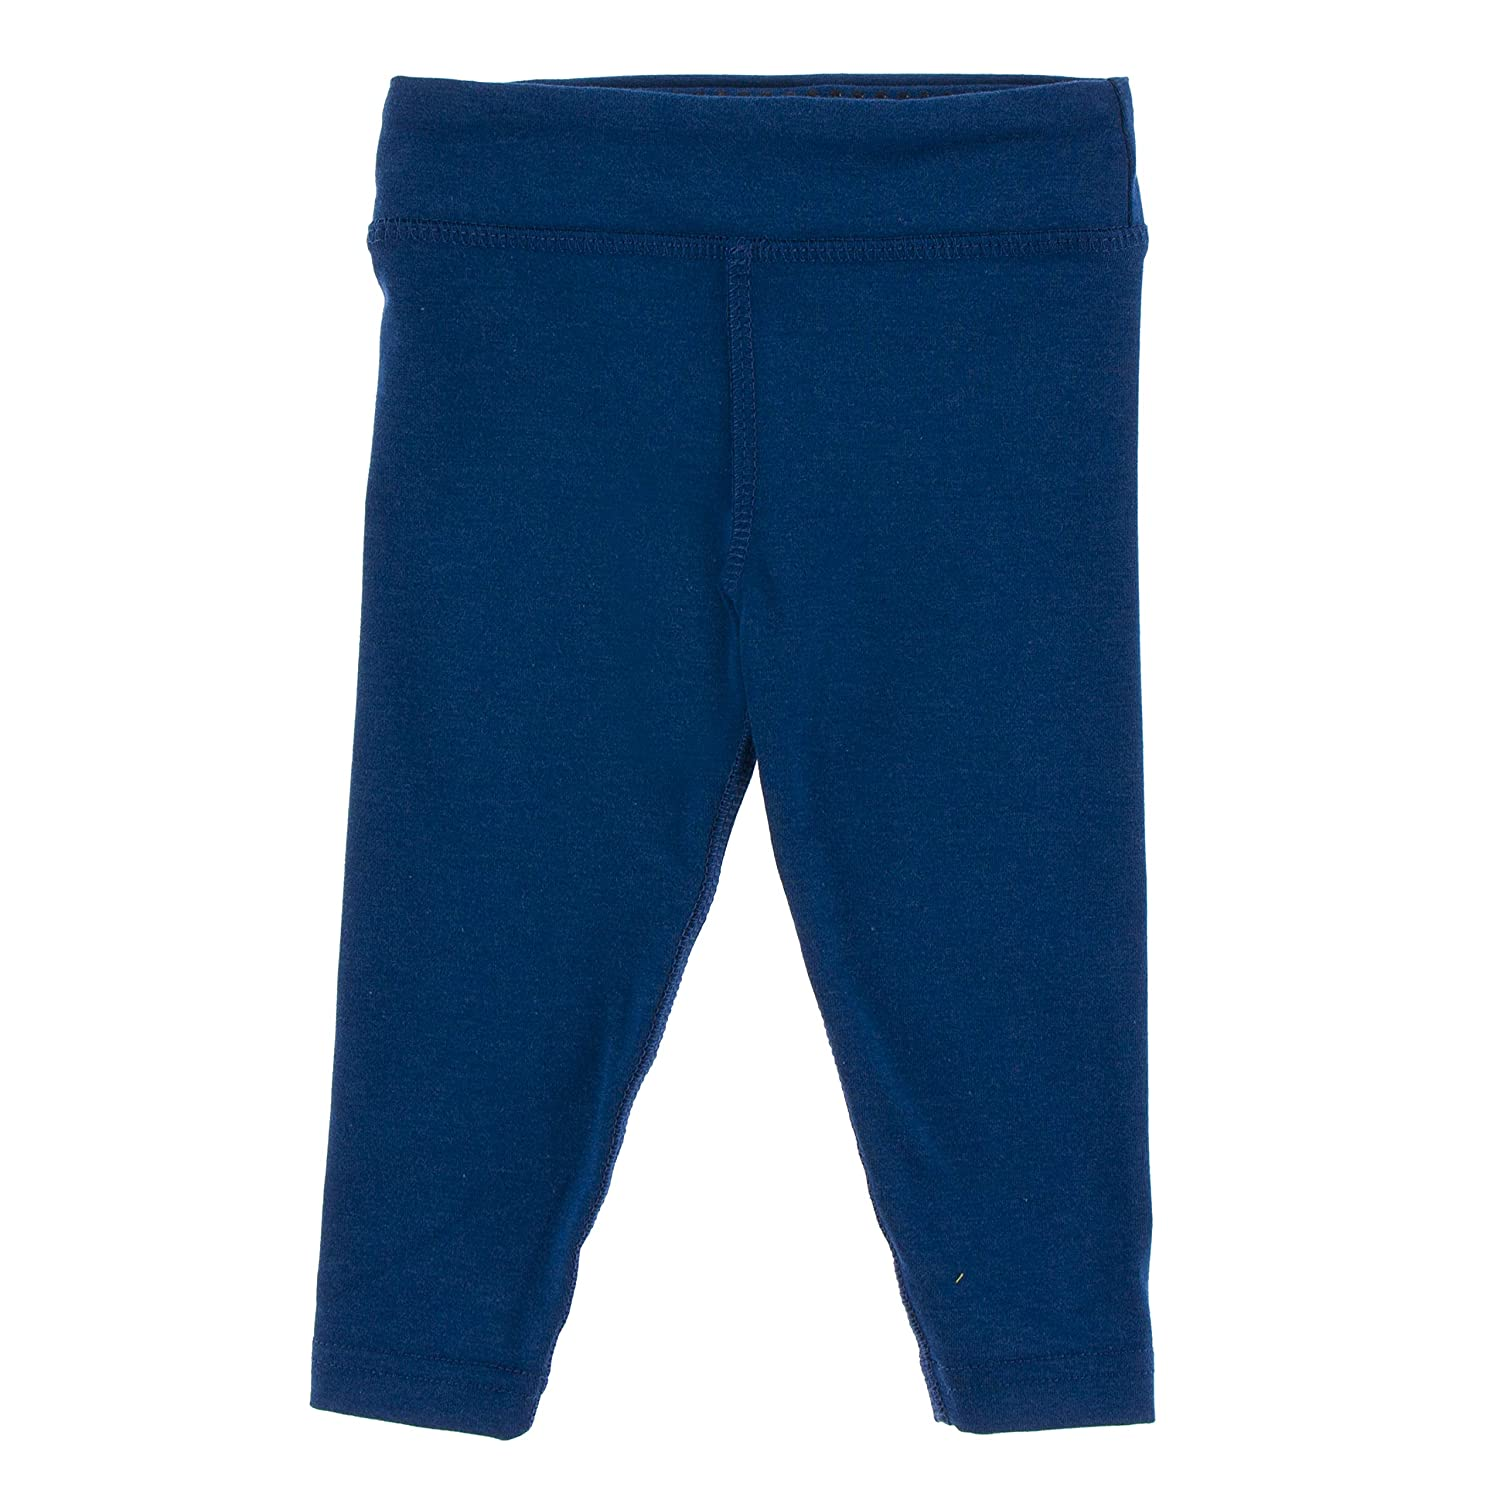 M-8//10 KicKee Pants Solid Performance Jersey Legging in Navy